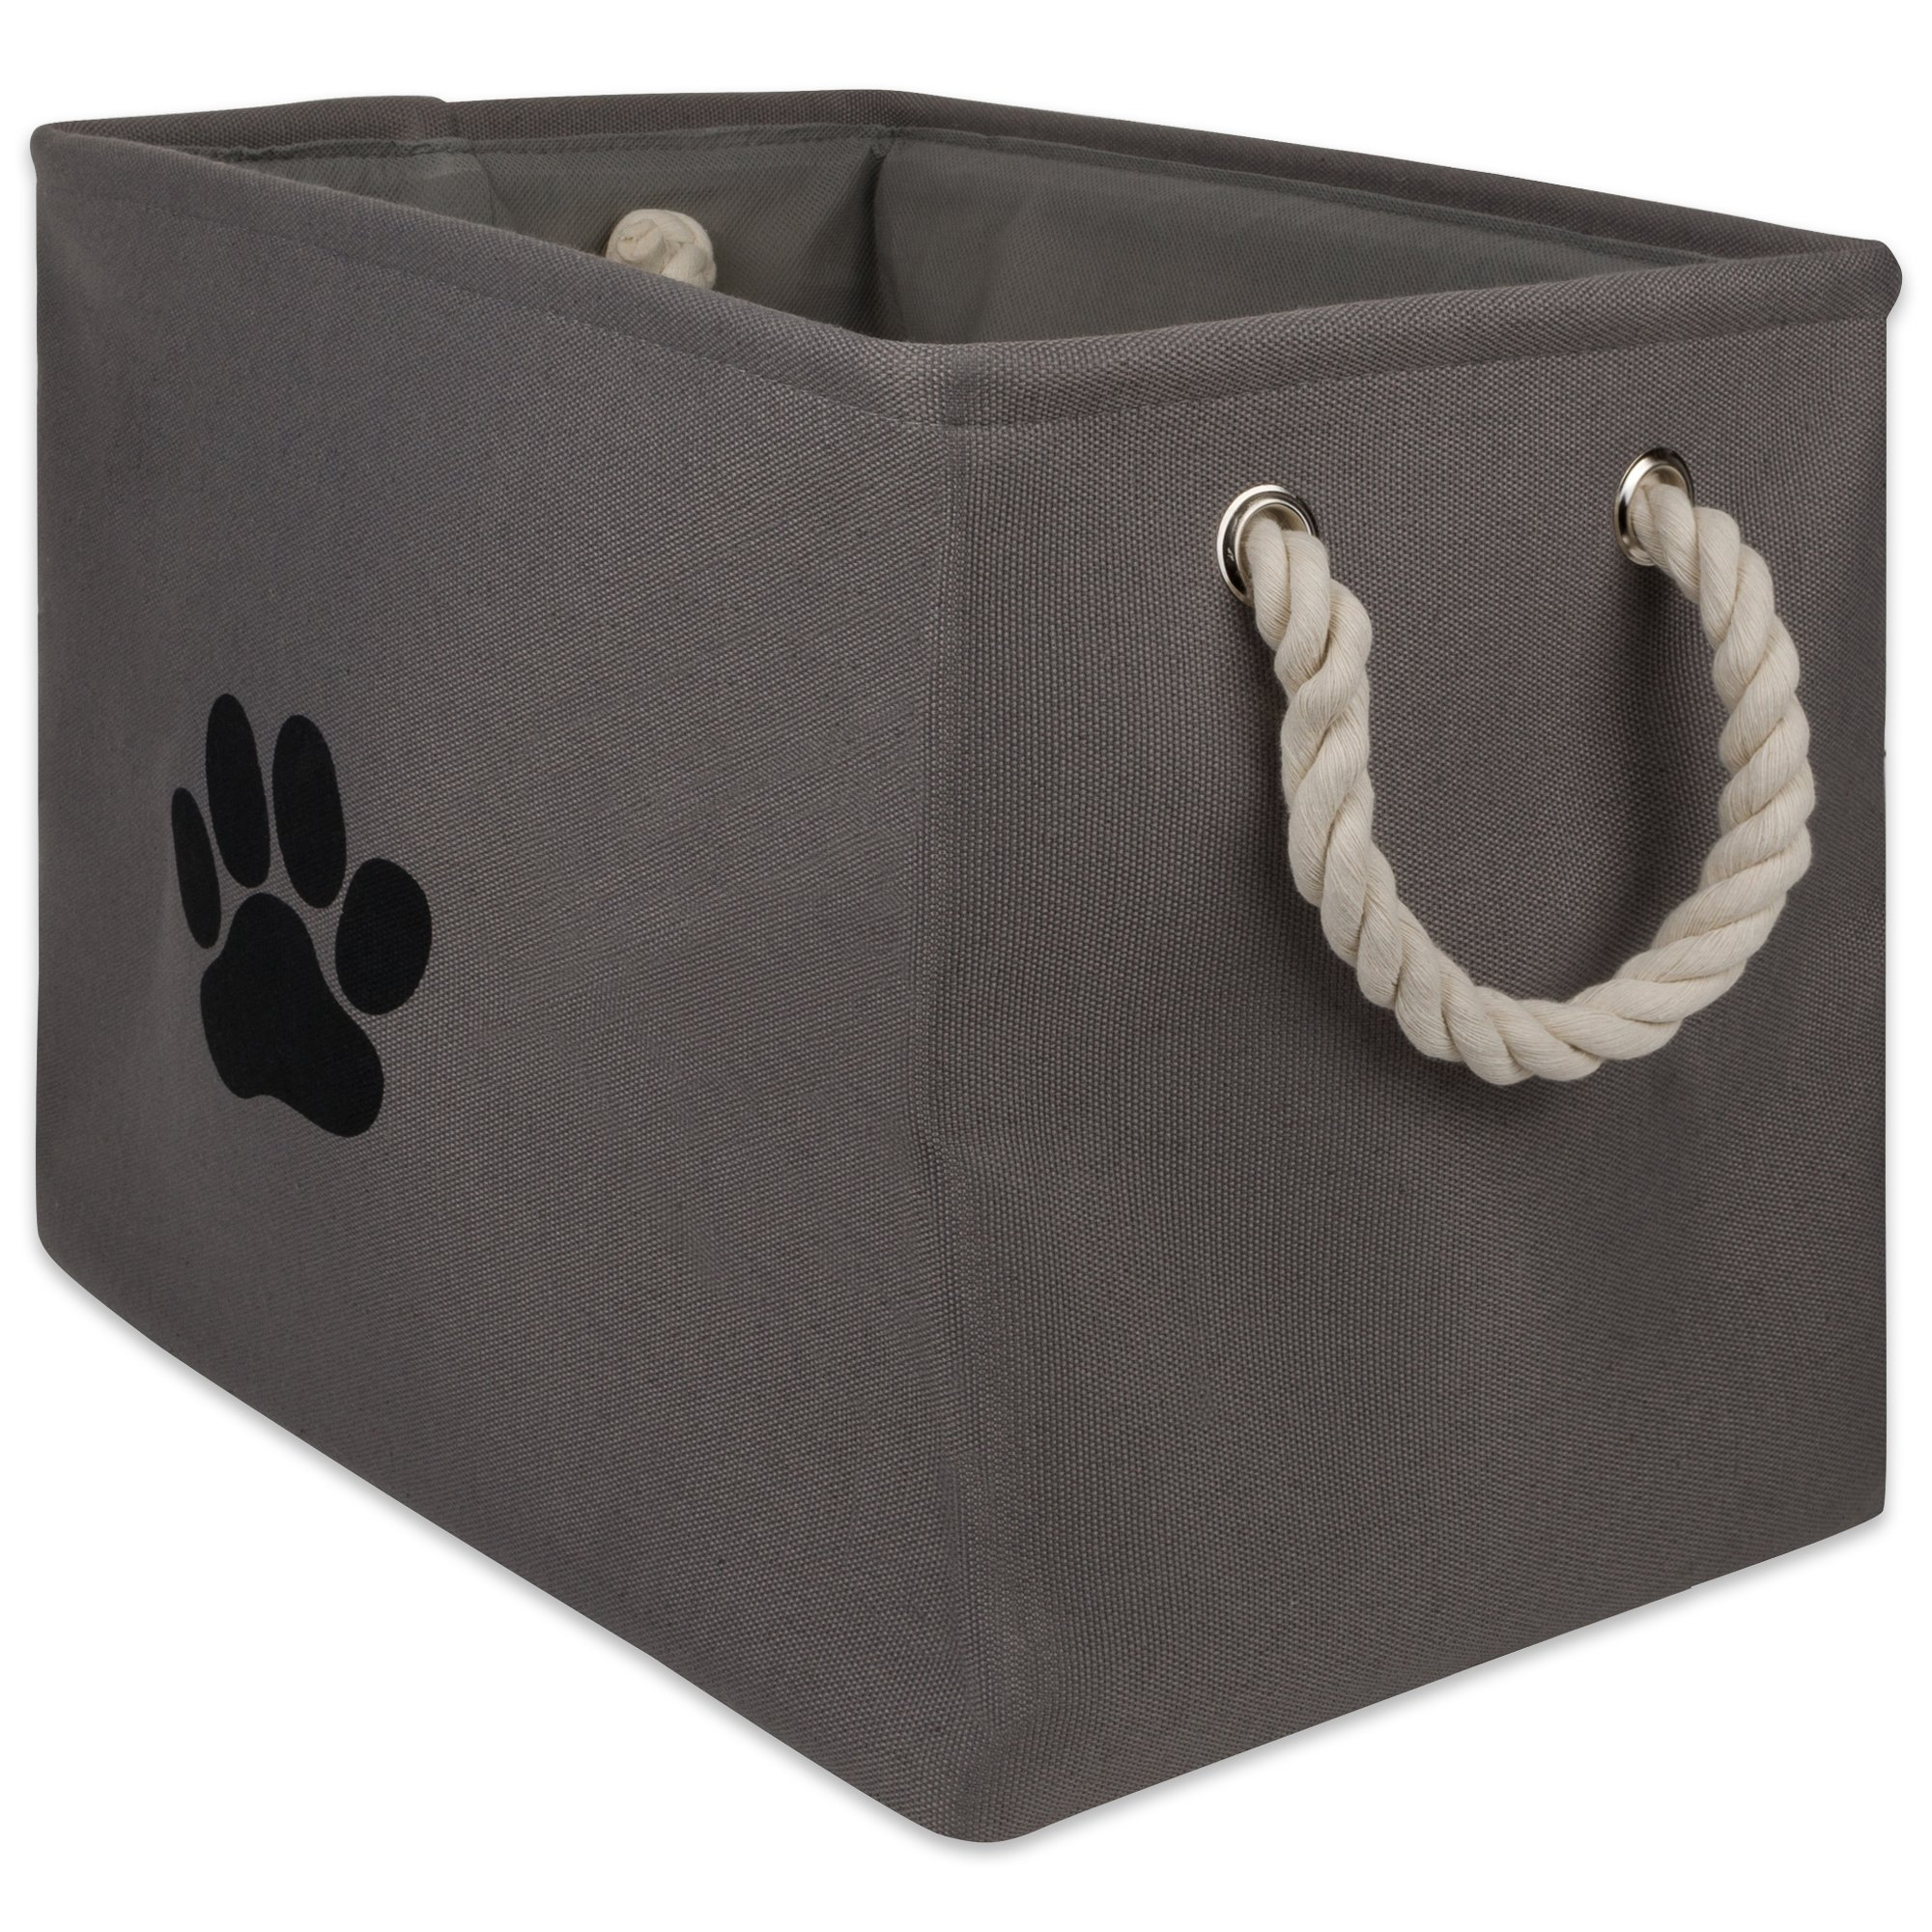 Bone Dry DII Medium Rectangle Pet Toy and Accessory Storage Bin, 16x10x12, Collapsible Organizer Storage Basket for Home Décor, Pet Toy, Blankets, Leashes and Food-Gray Paw Print